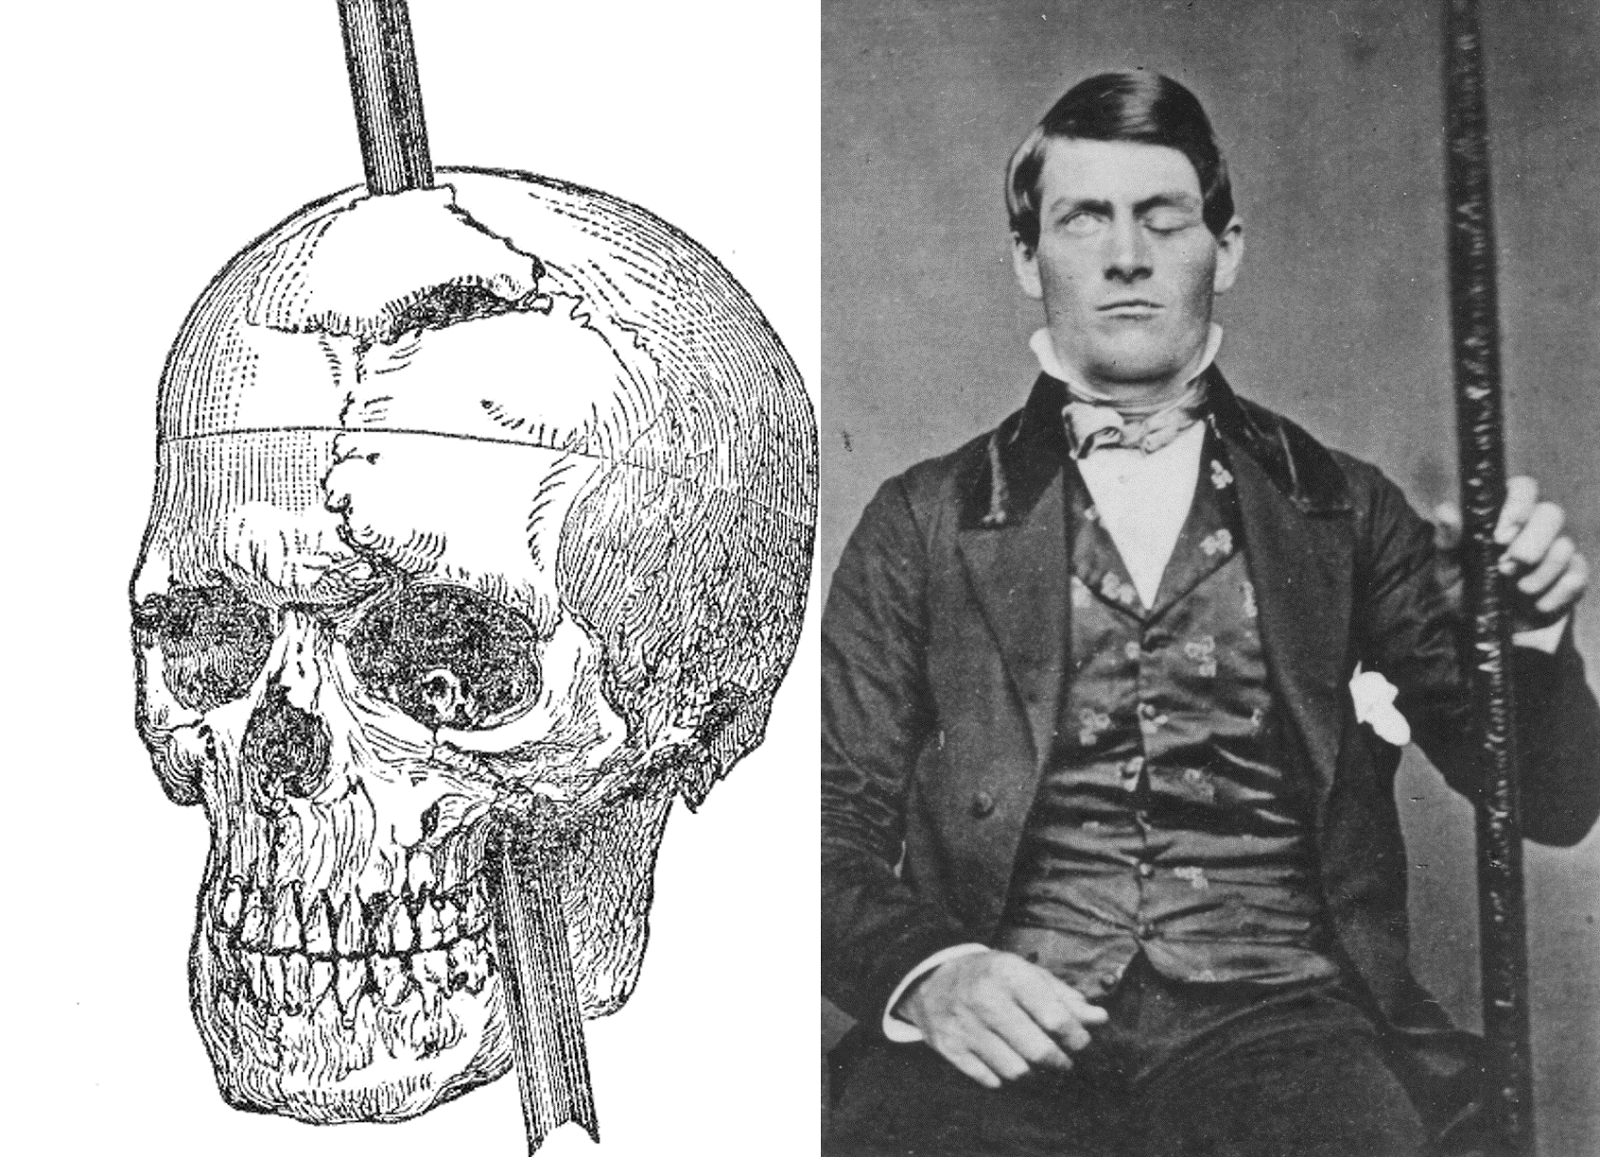 The Curious Case of Phineas Gage